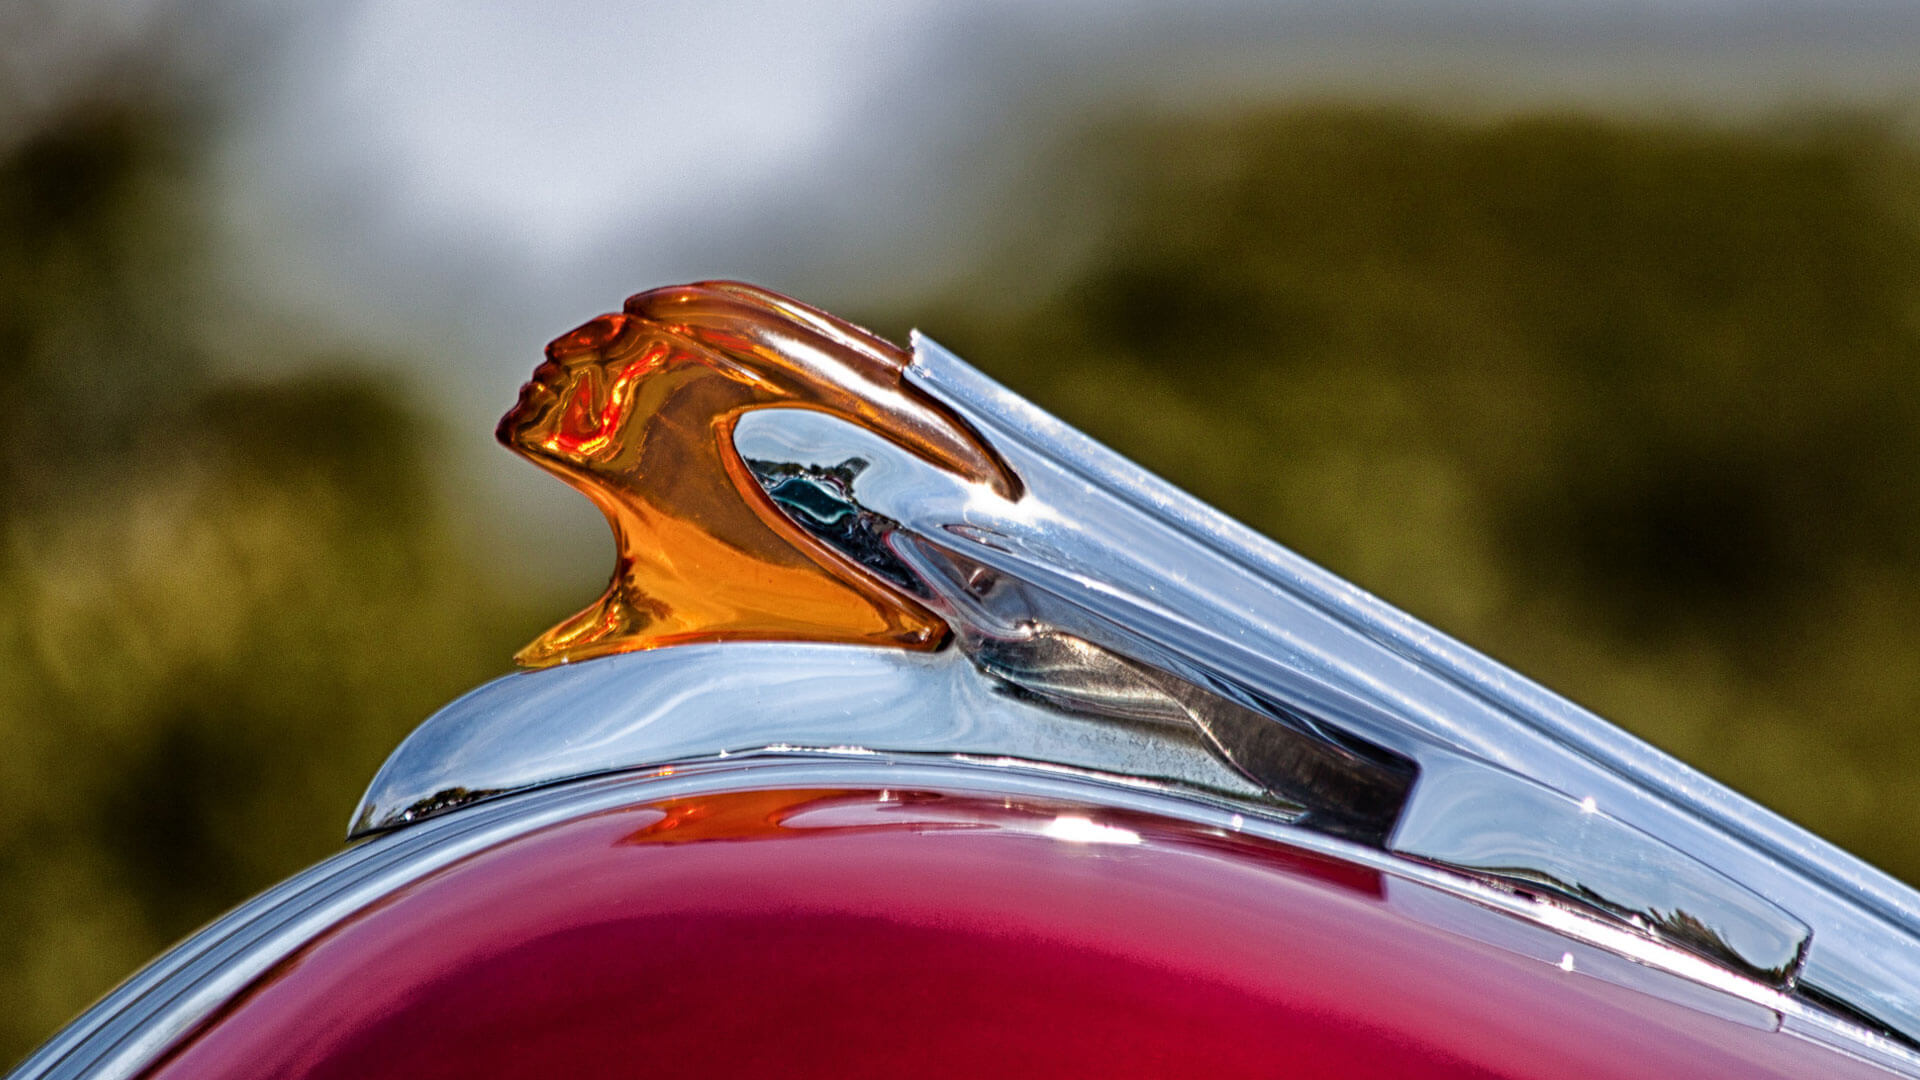 photographing car shows